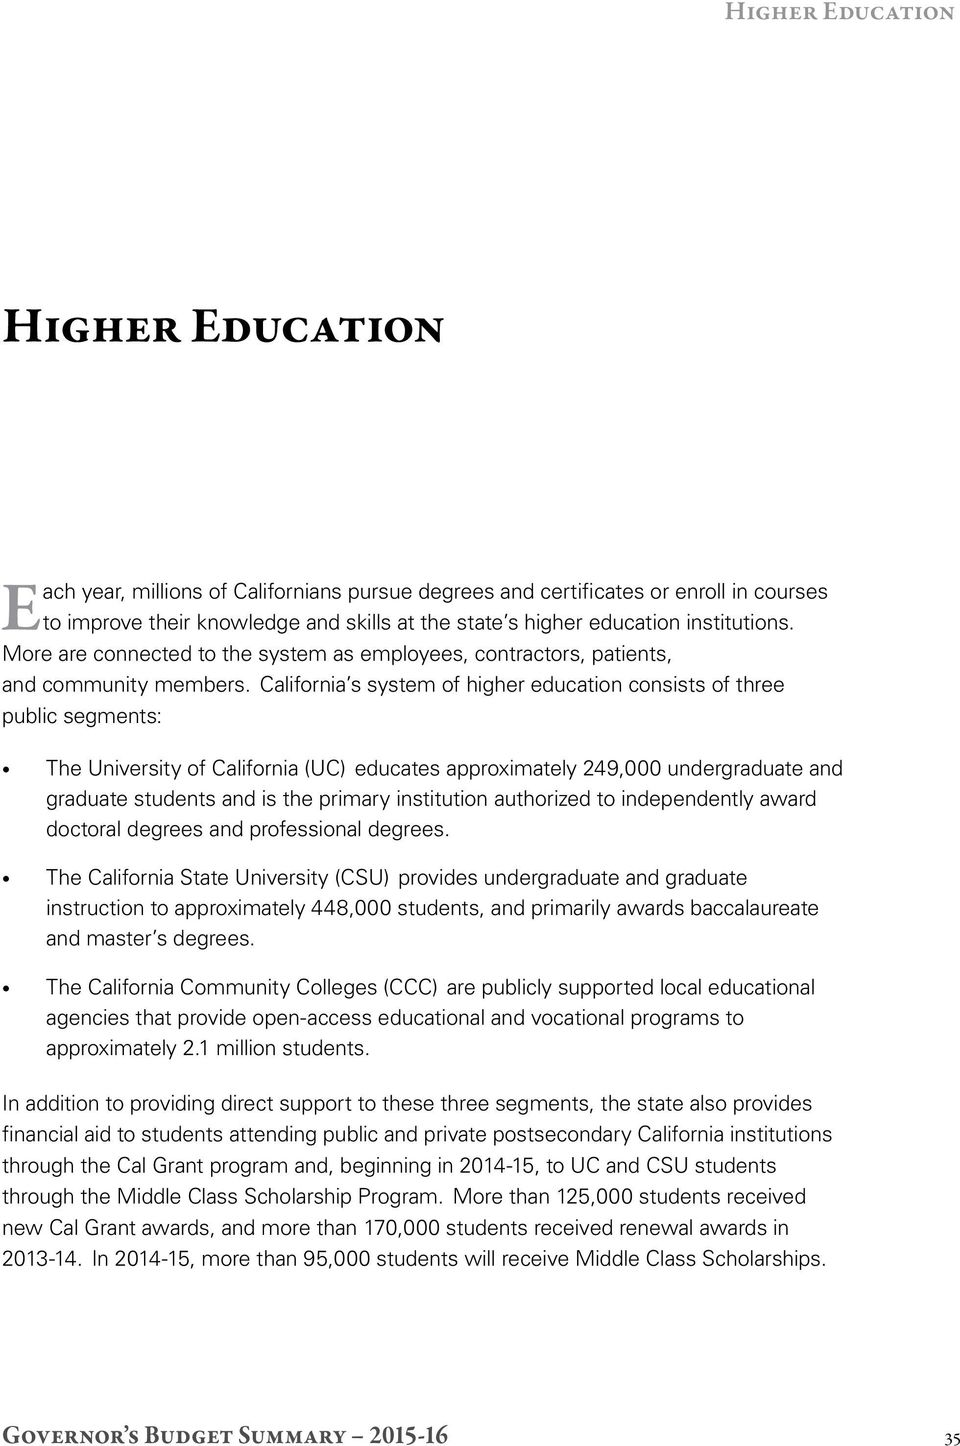 California s system of higher education consists of three public segments: The University of California (UC) educates approximately 249,000 undergraduate and graduate students and is the primary